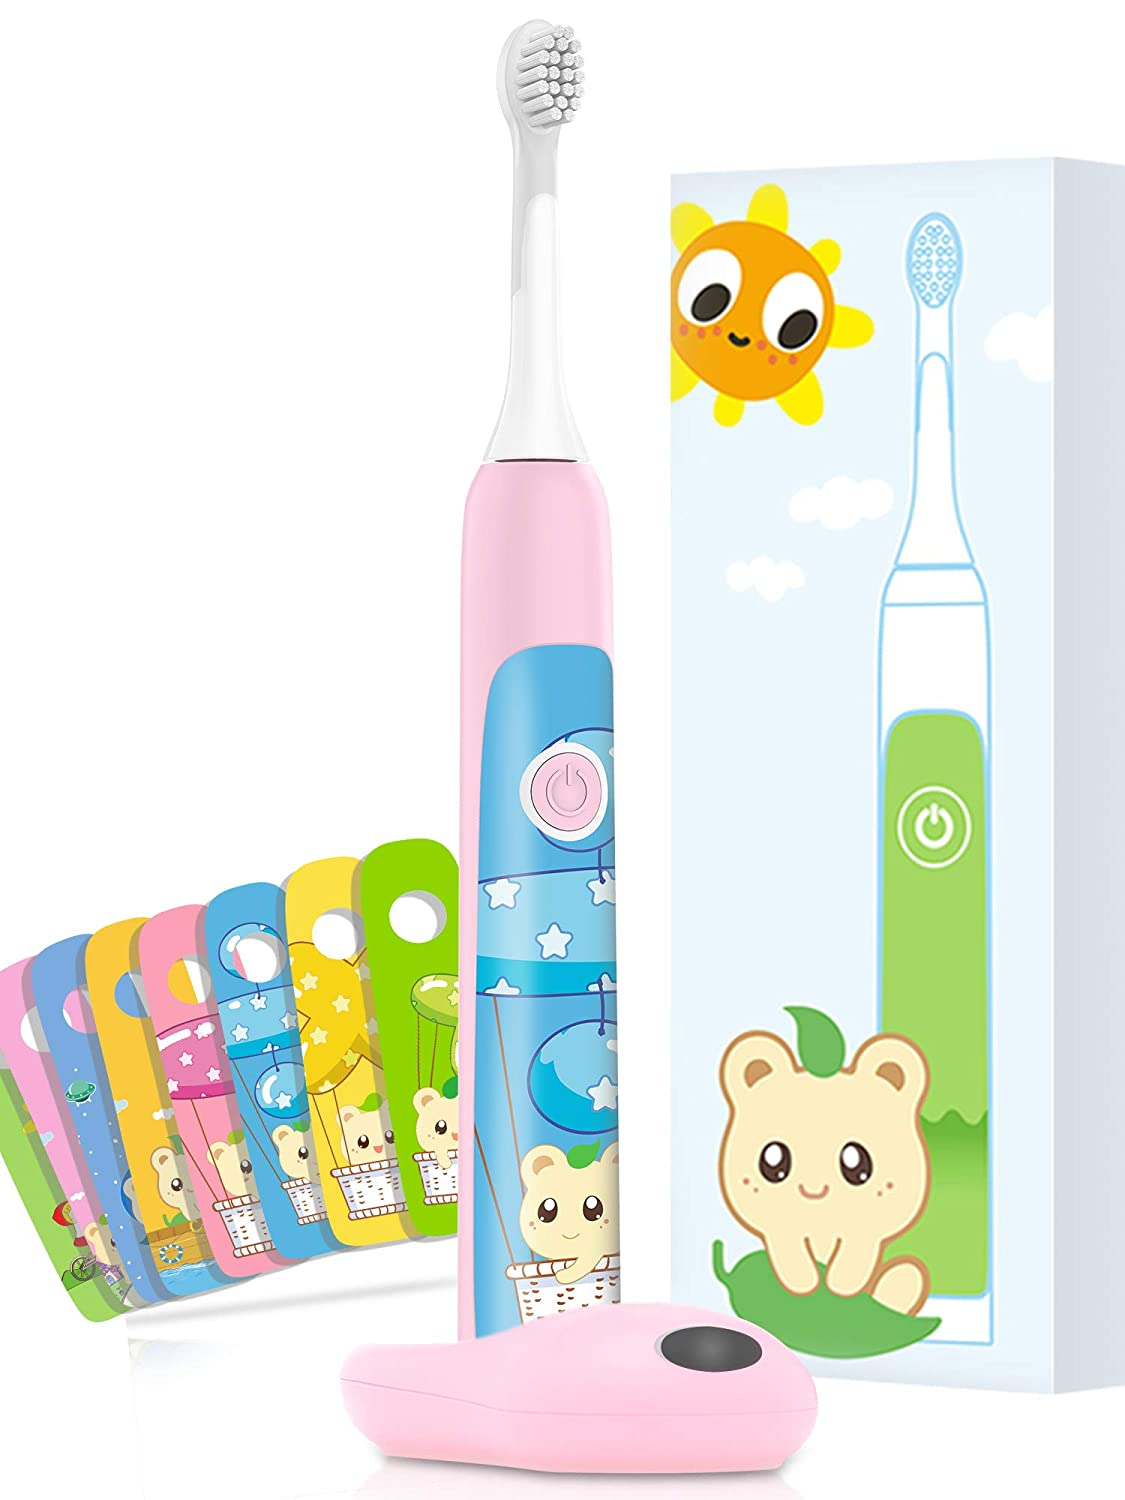 Aiwejay Kids SONIC Electric Toothbrush Rechargeble For ages 3-12,8 Cute Stickers, 3 Vibration Modes,Pink